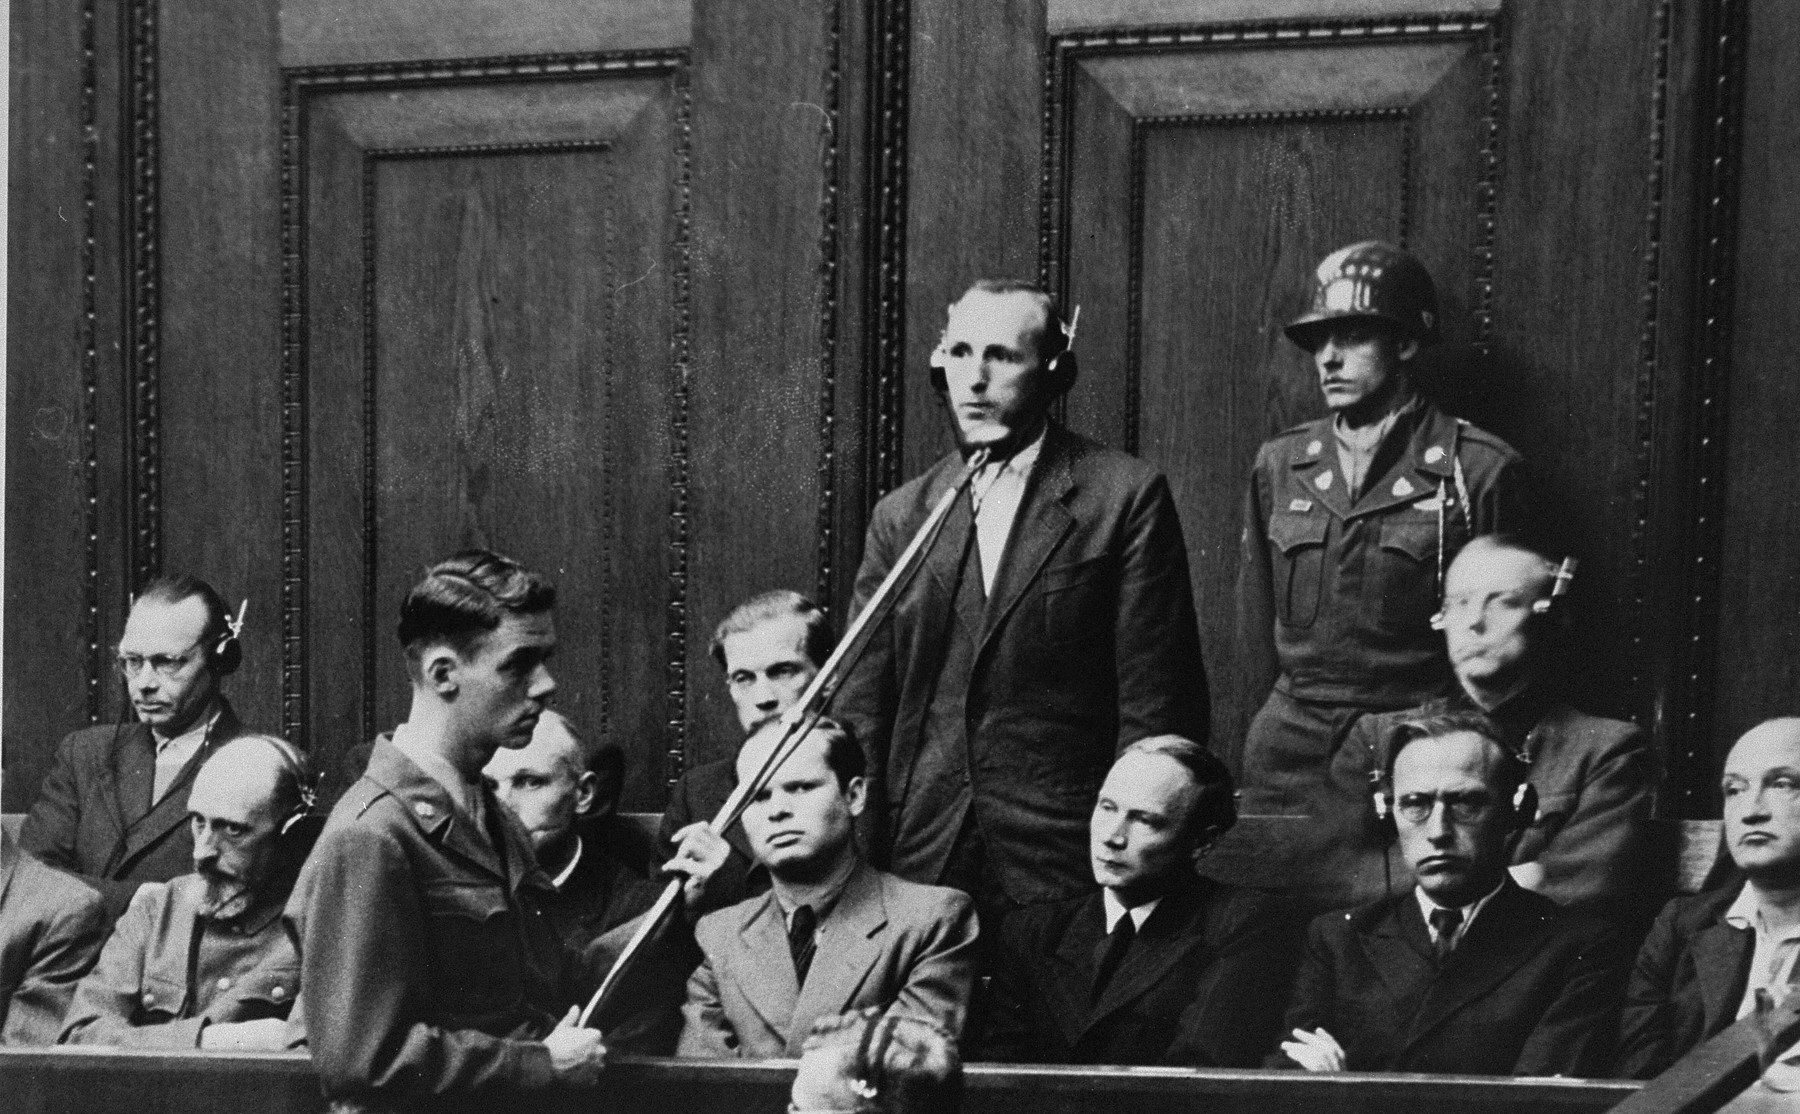 Defendant Walter Blume pleads not guilty during his arraignment at the Einsatzgruppen Trial.